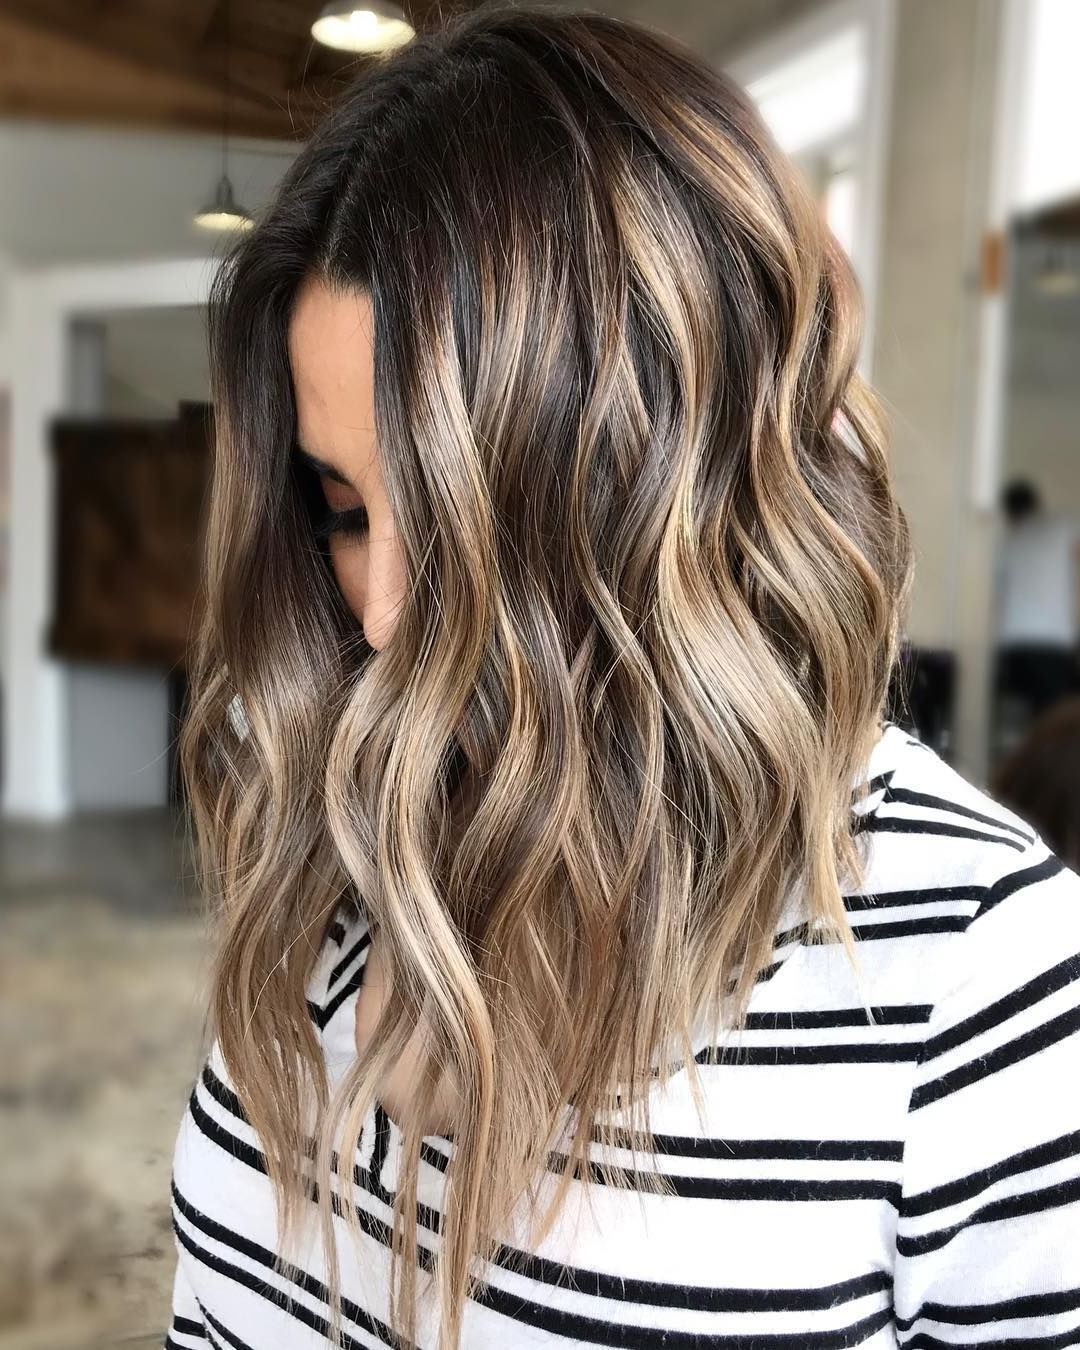 Flattering Shoulder Length Wavy Hairstyles For Women, Female 2020 Women'S Medium Hairstyles